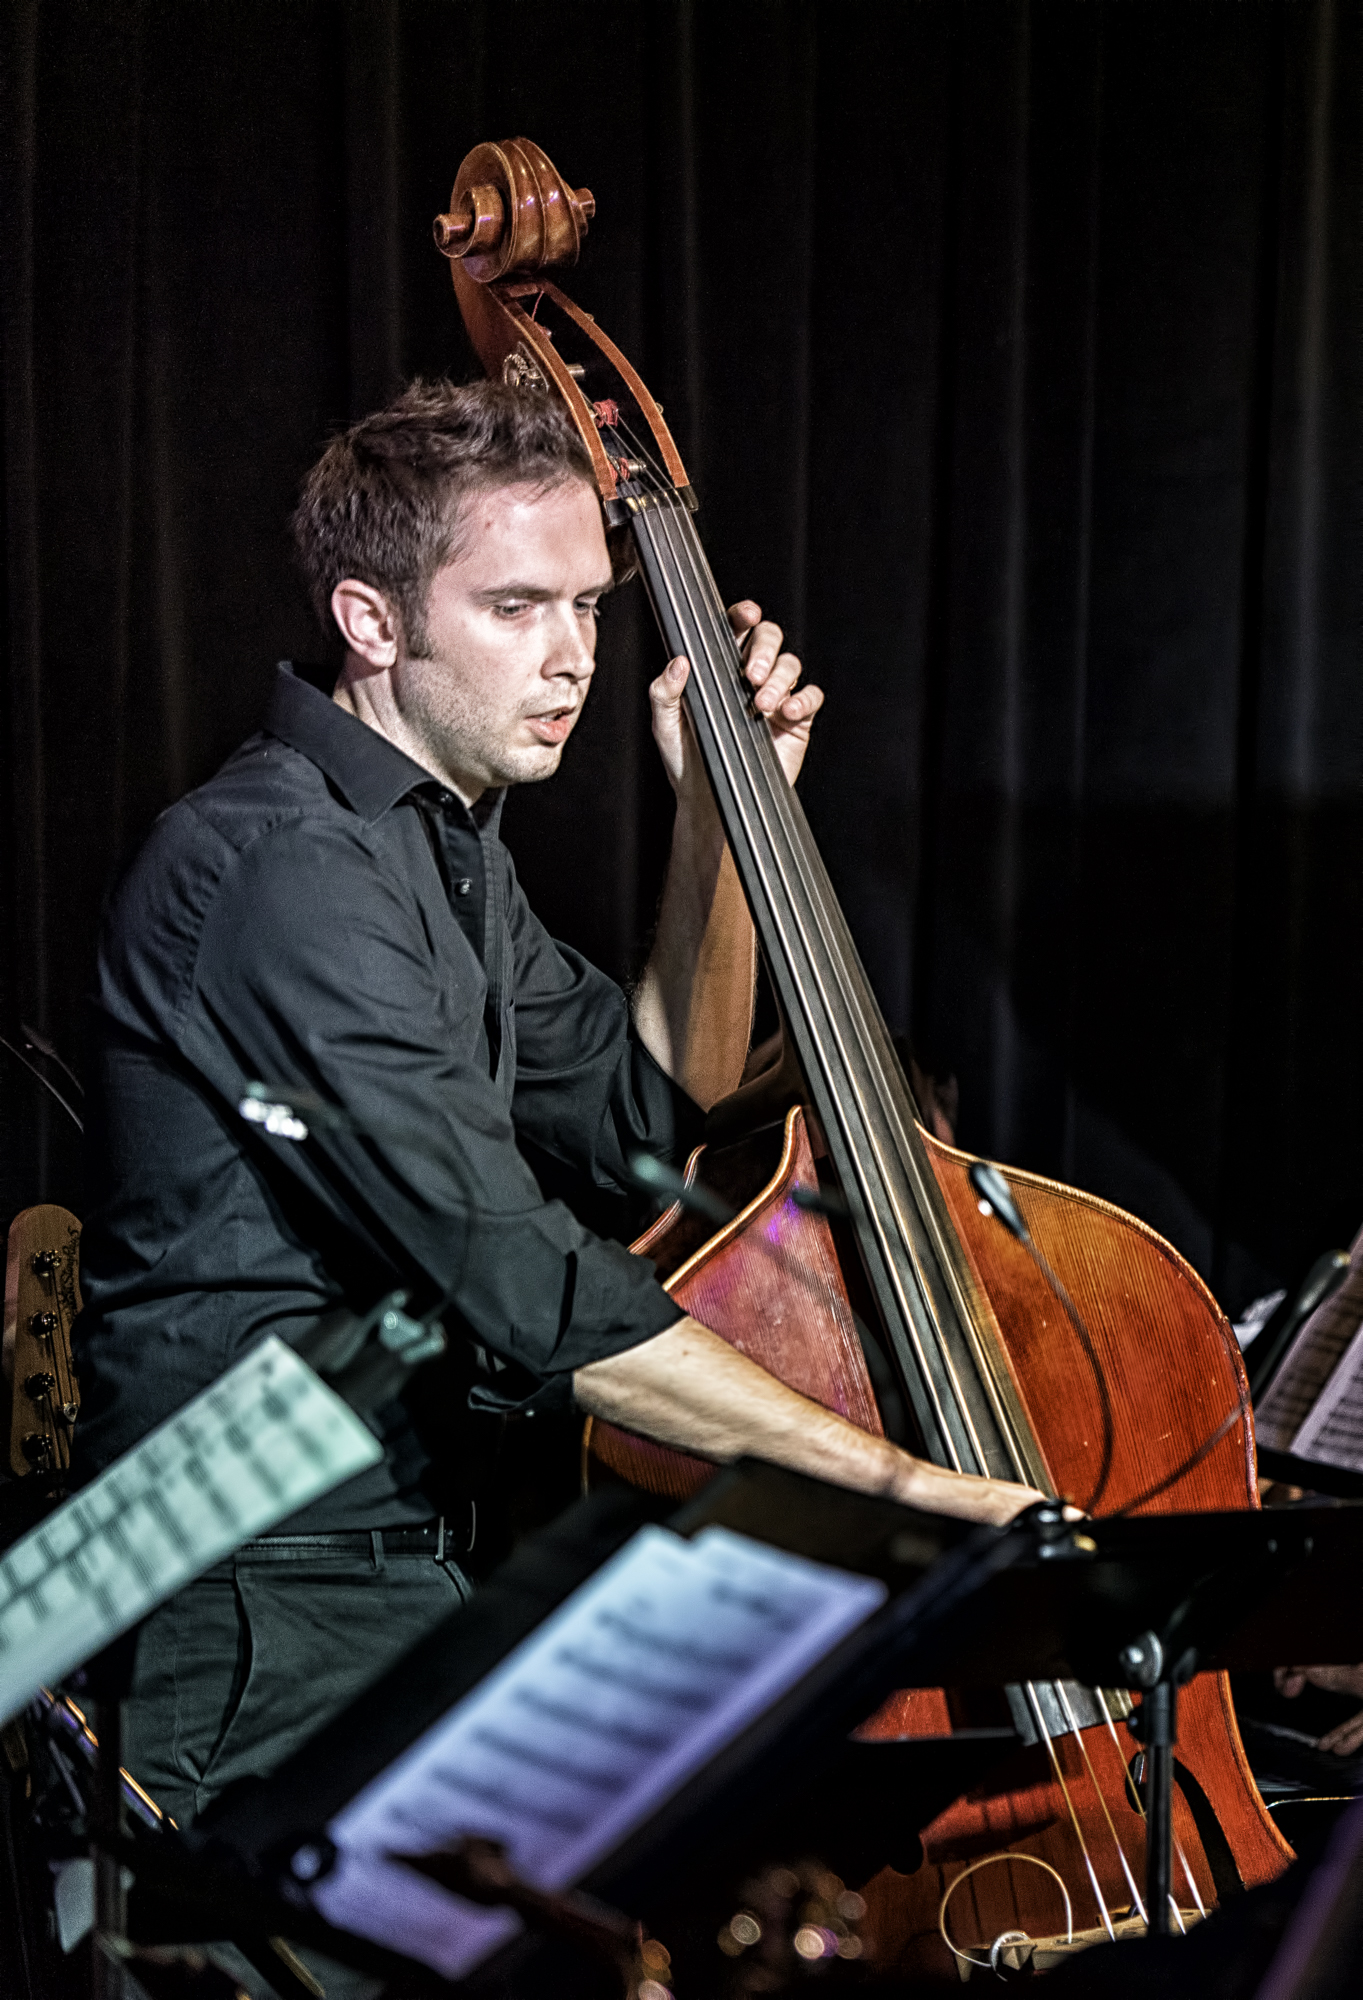 Ben Hedquist With Eric Rasmussen And Scottsdale Community College Jazz Orchestra With John Hollenbeck At The Nash In Phoenix